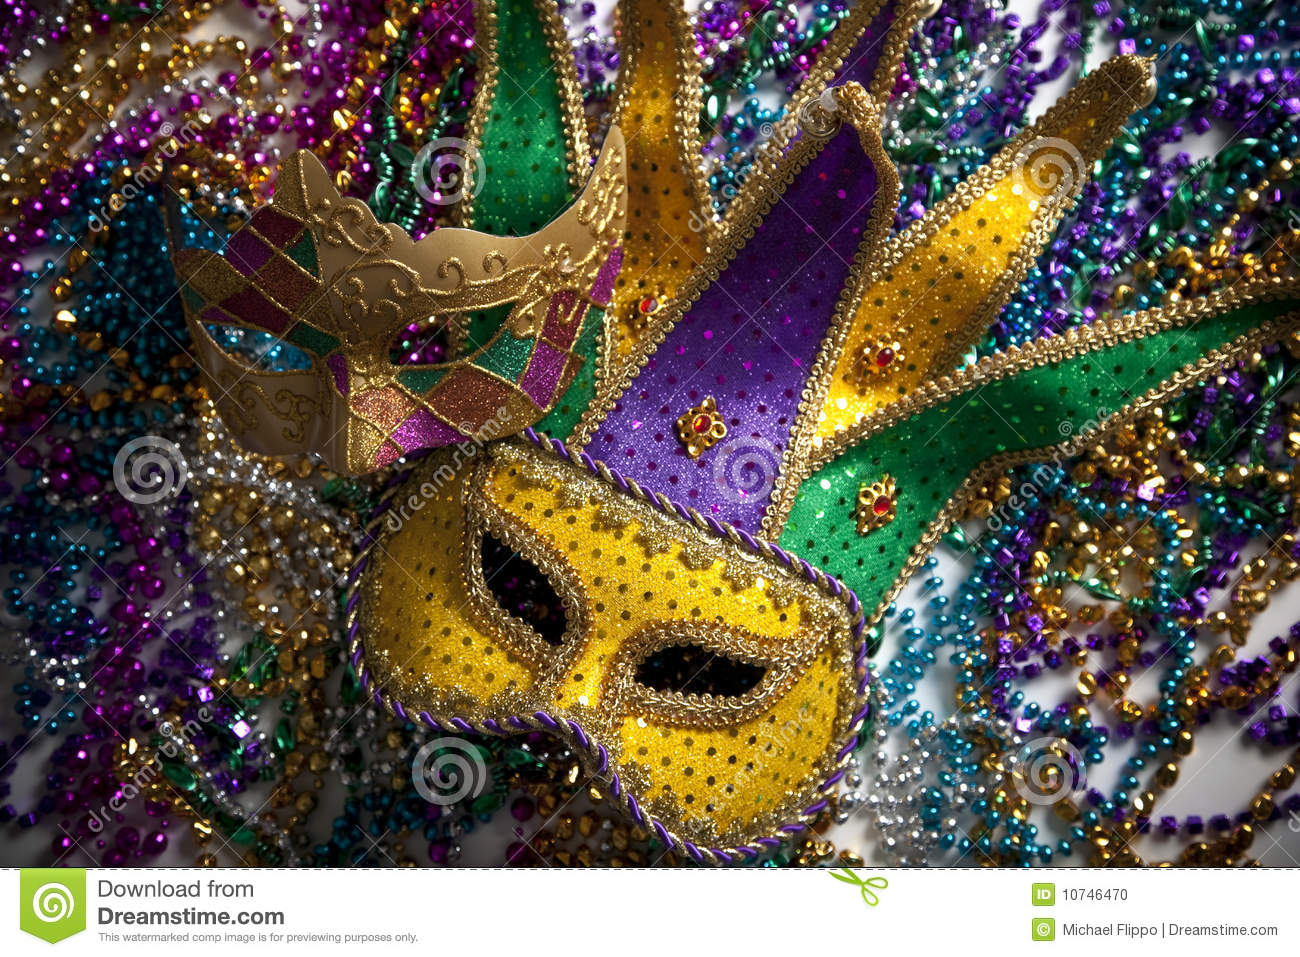 photo image beads mardi photos gras alamy stock carnival or images